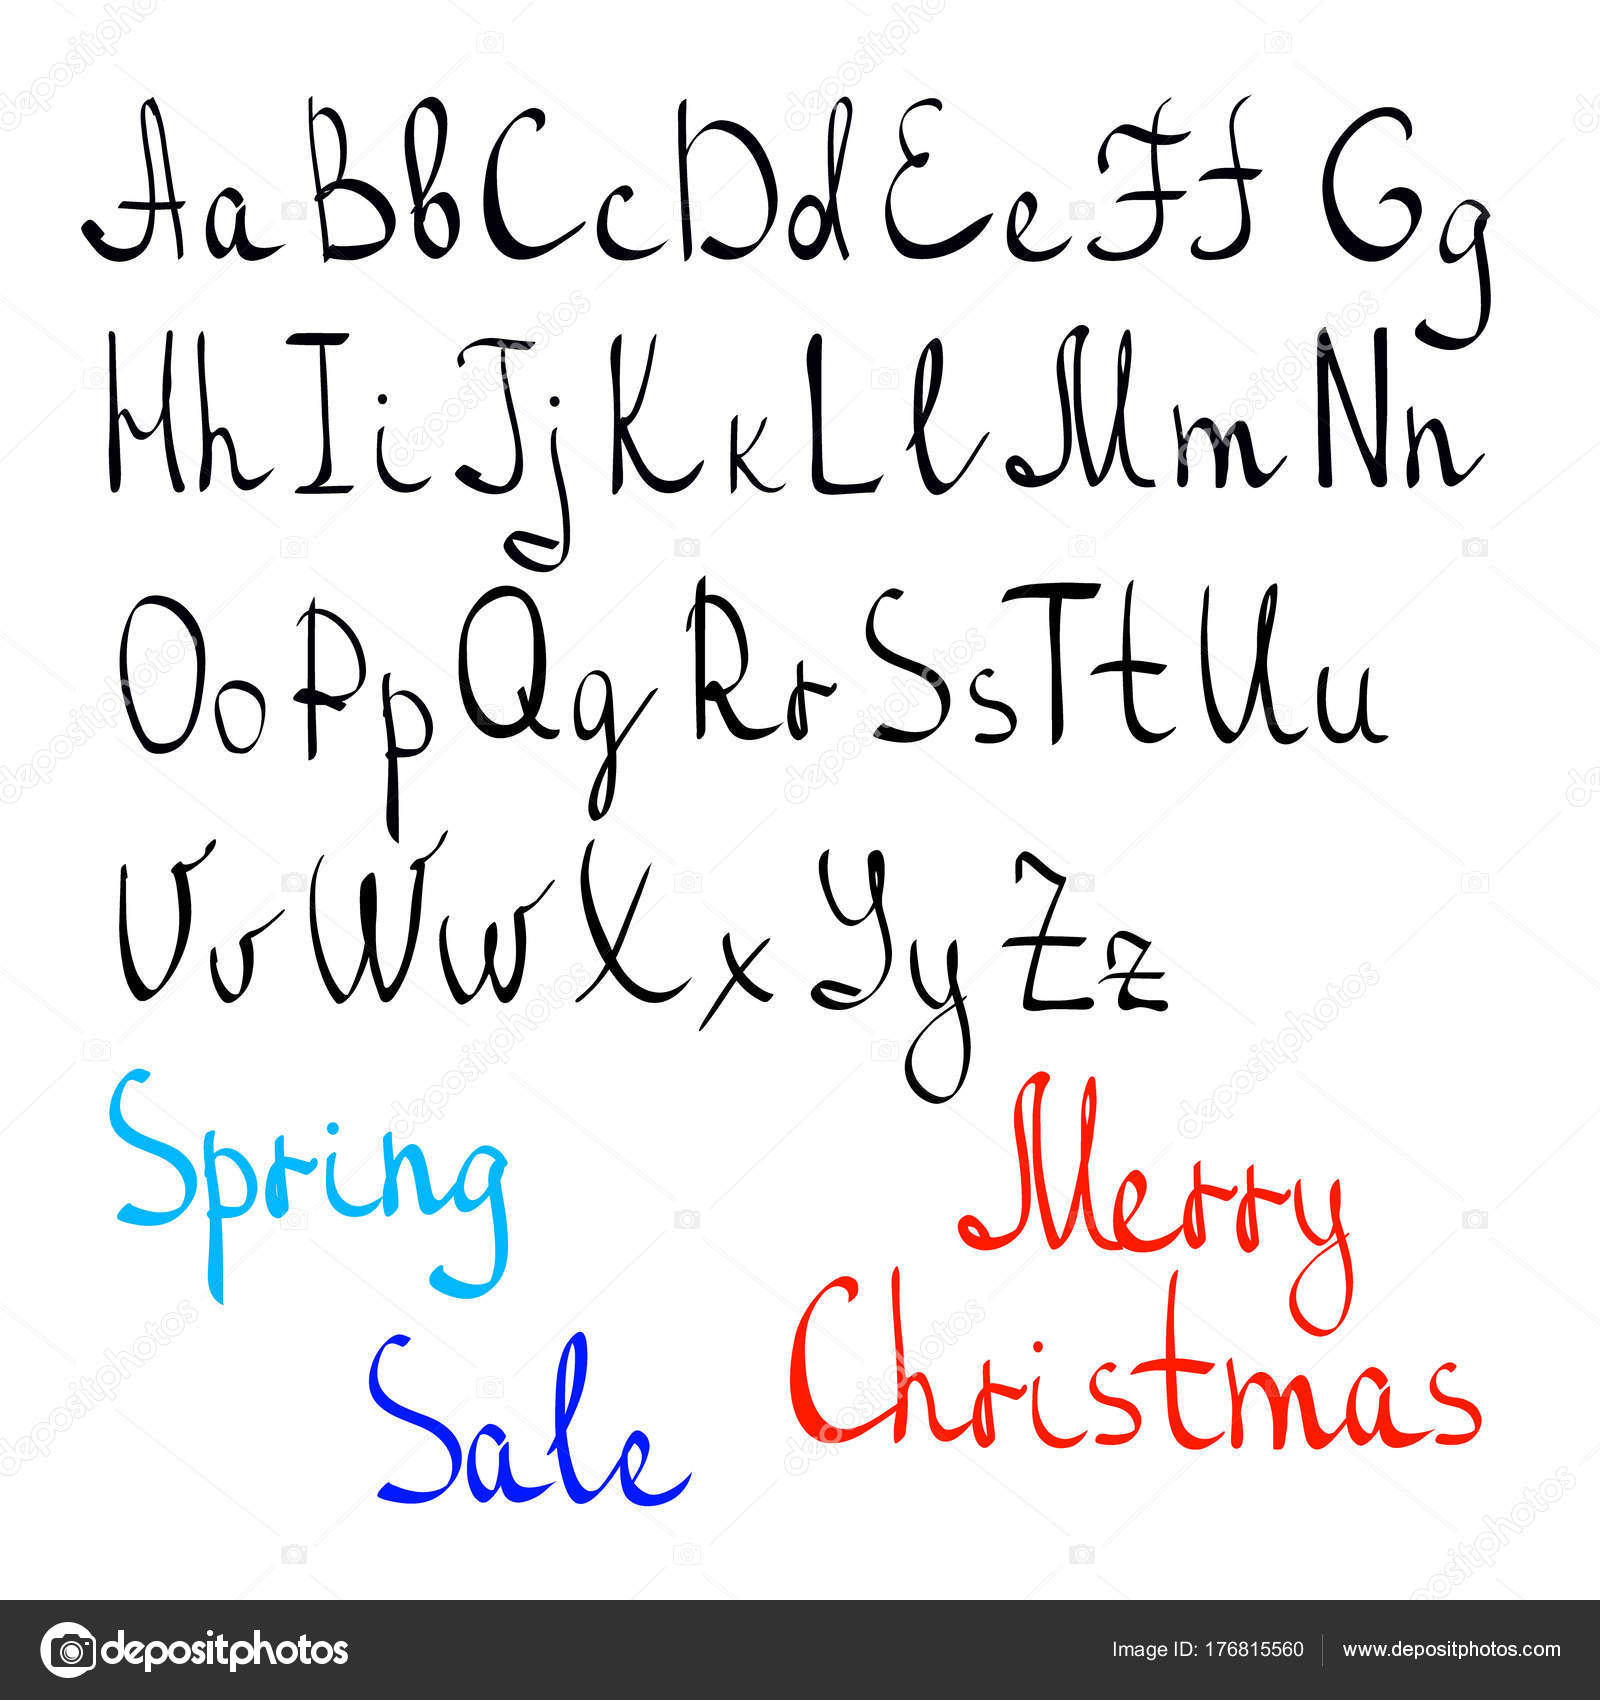 Written alphabet hand english letters casually written letters words written alphabet by hand english letters casually written letters words spring sale merry christmas made up of letters as an example vector eps 10 spiritdancerdesigns Images